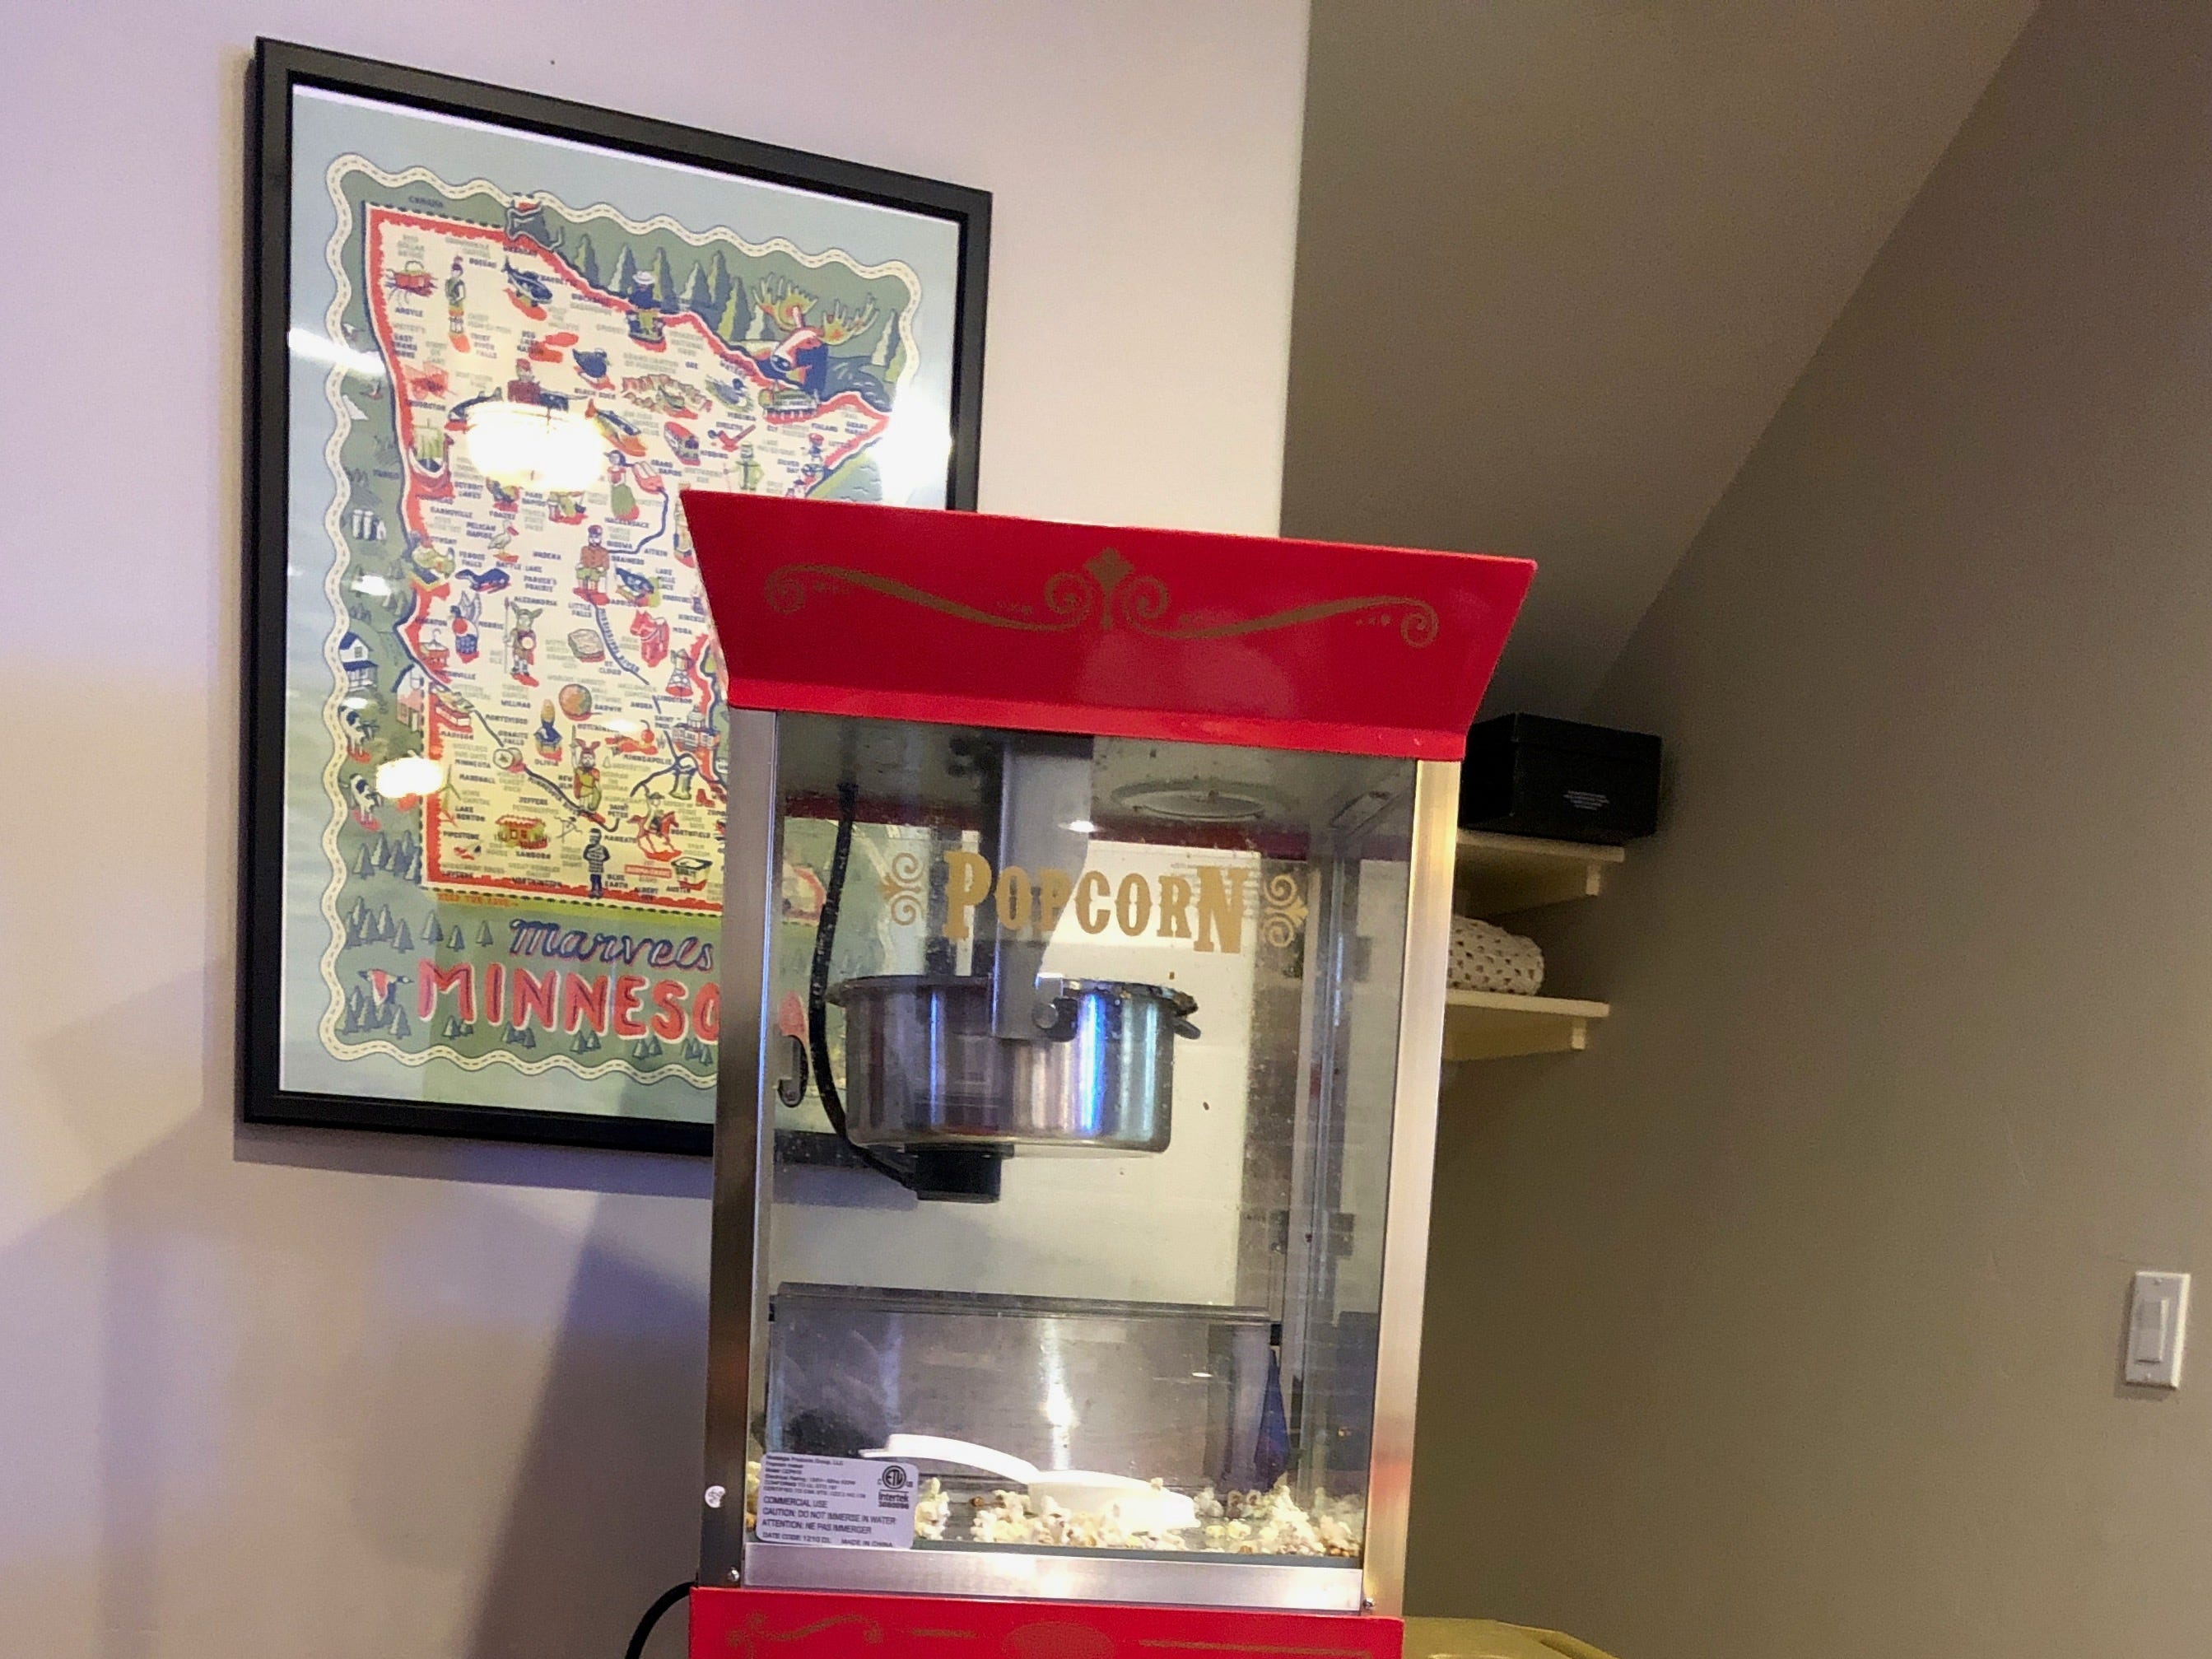 An old-fashioned popcorn machine is one of the fun amenities in the basement, which has been turned into a game and recreation room.